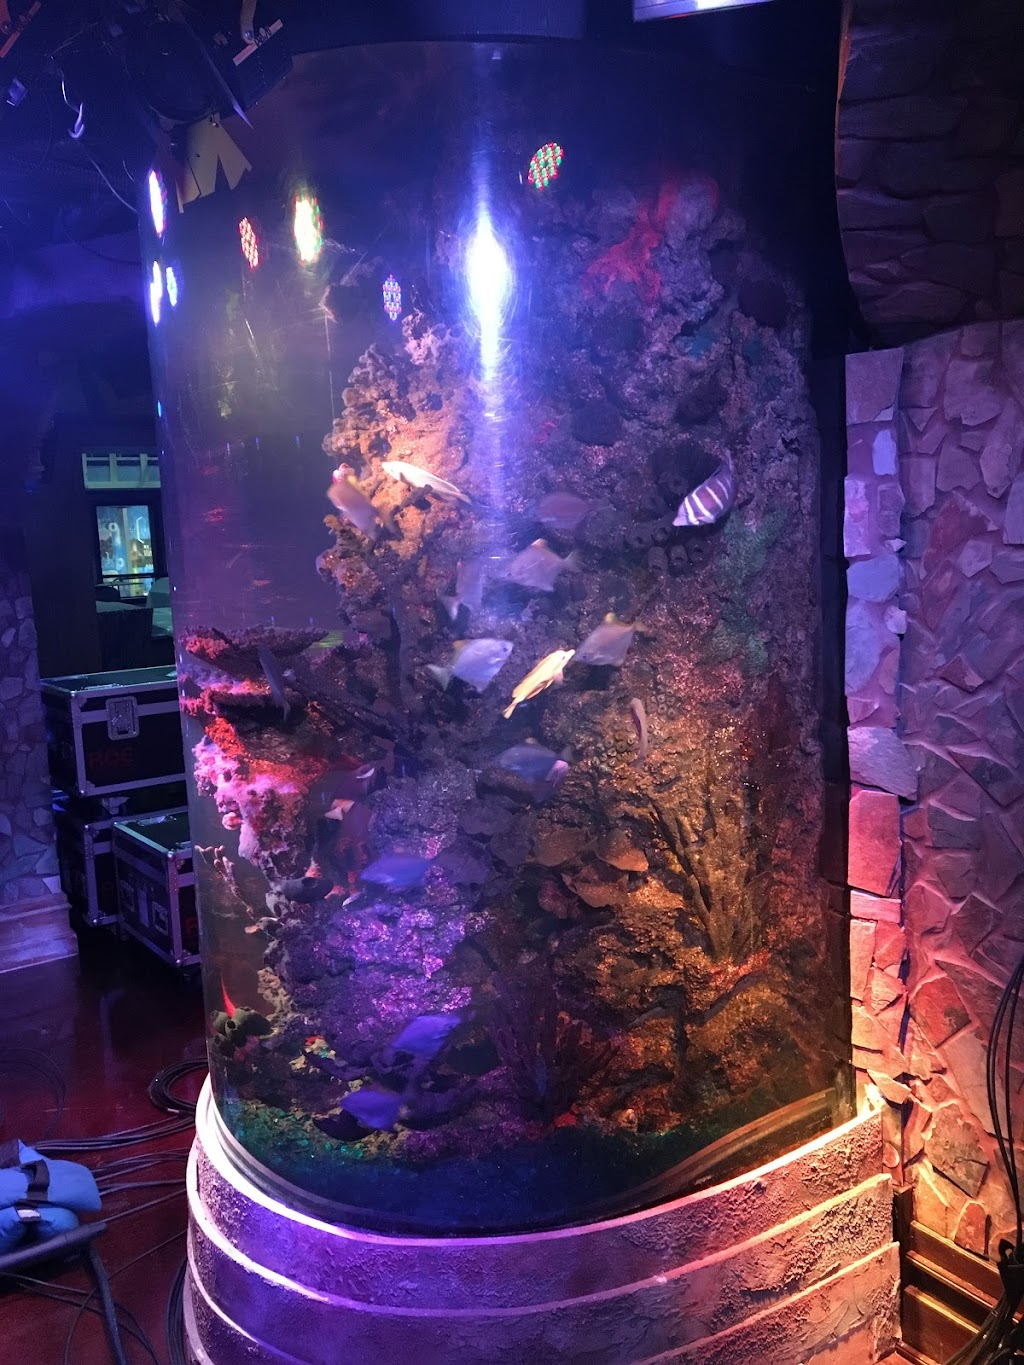 Aquarium Service Sales Fort Worth Dallas TX | Aquarium Headquarters